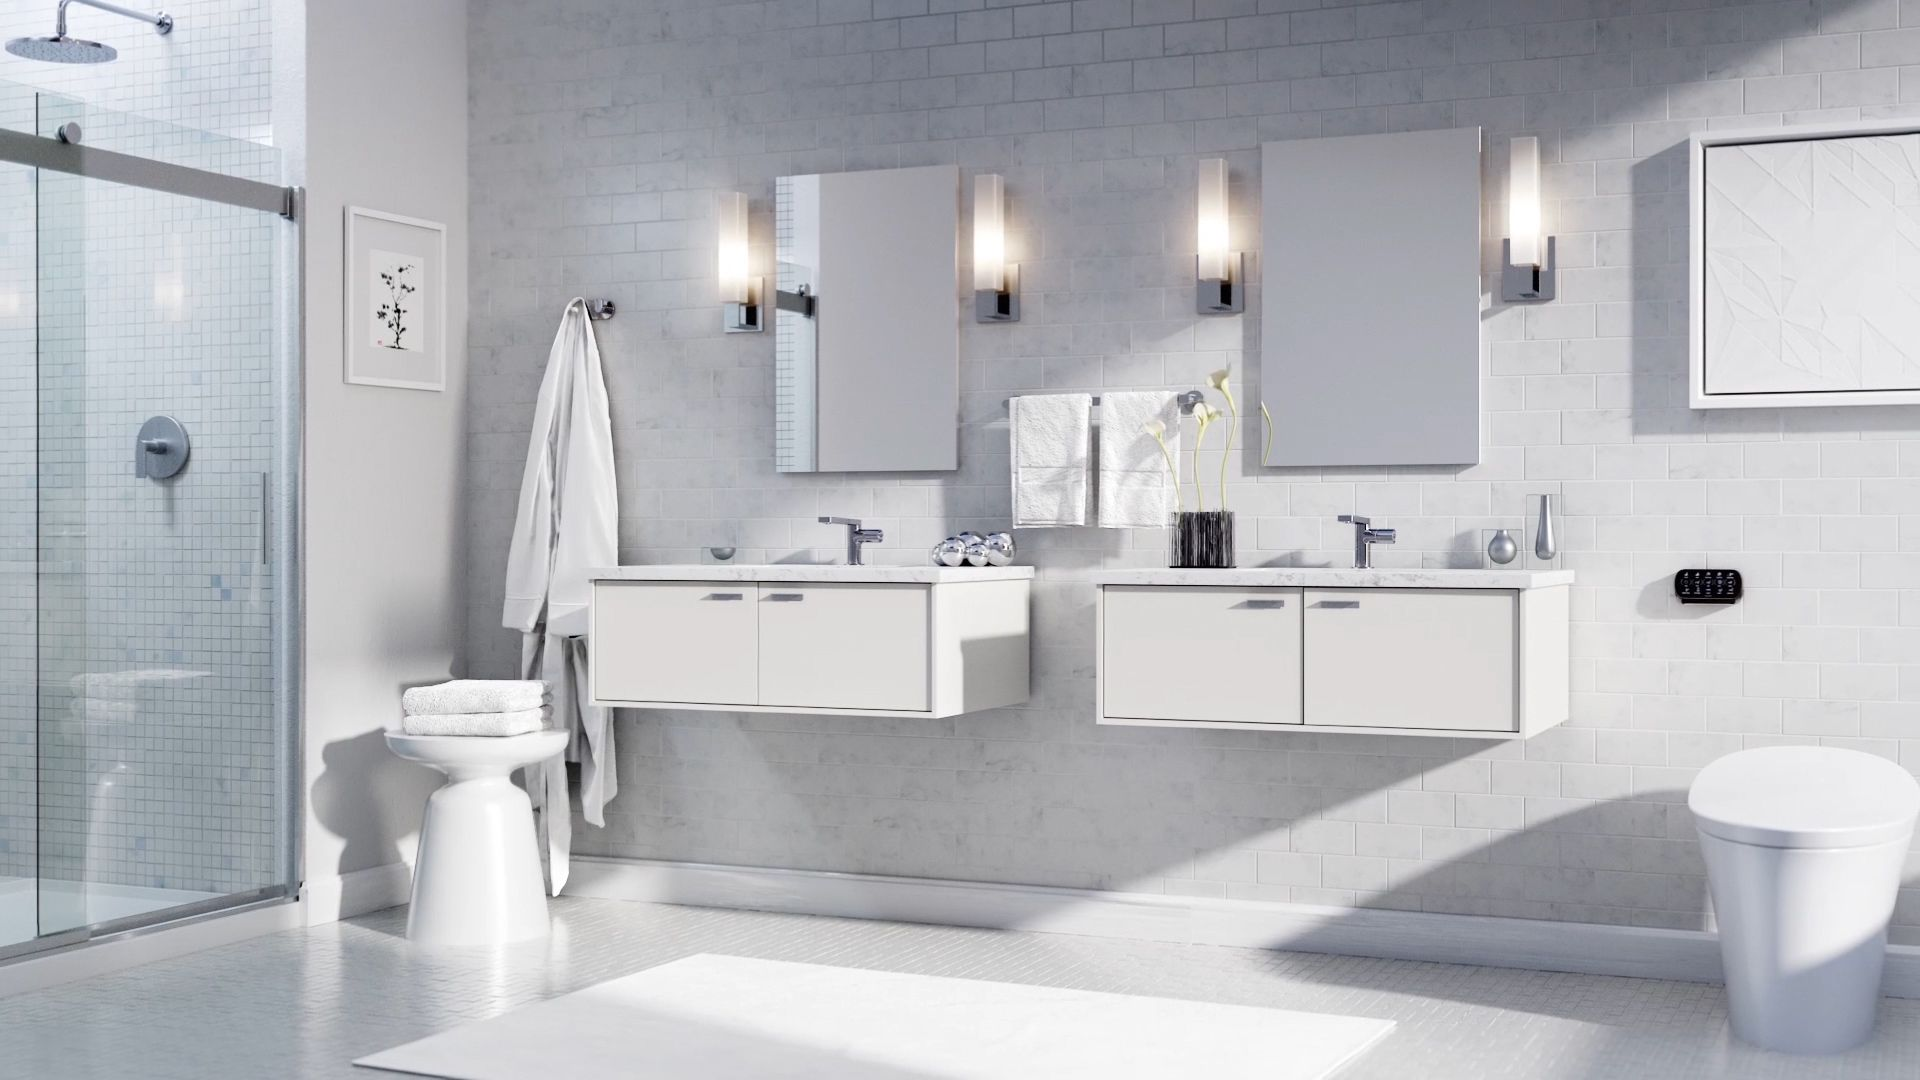 Badezimmer ideen creme image result for kohler badezimmer  modern bathroom in   pinterest